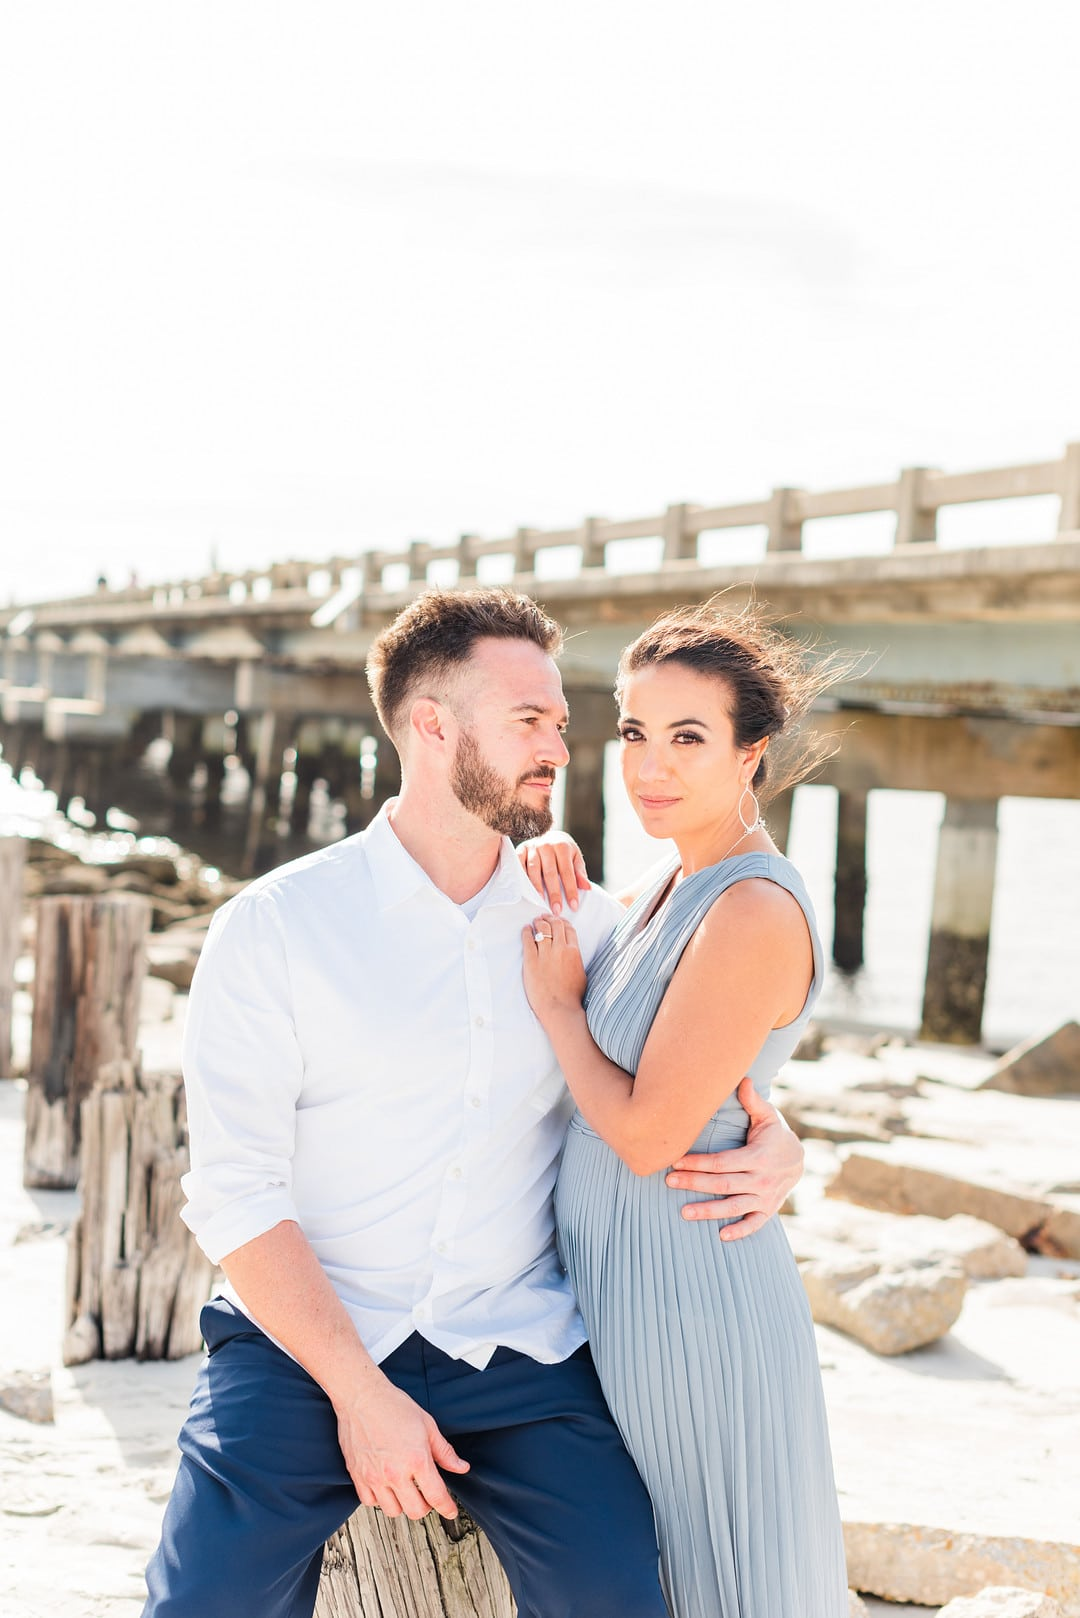 the guests dressed in blue to match the theme of the amelia island beach wedding inspiration shoot